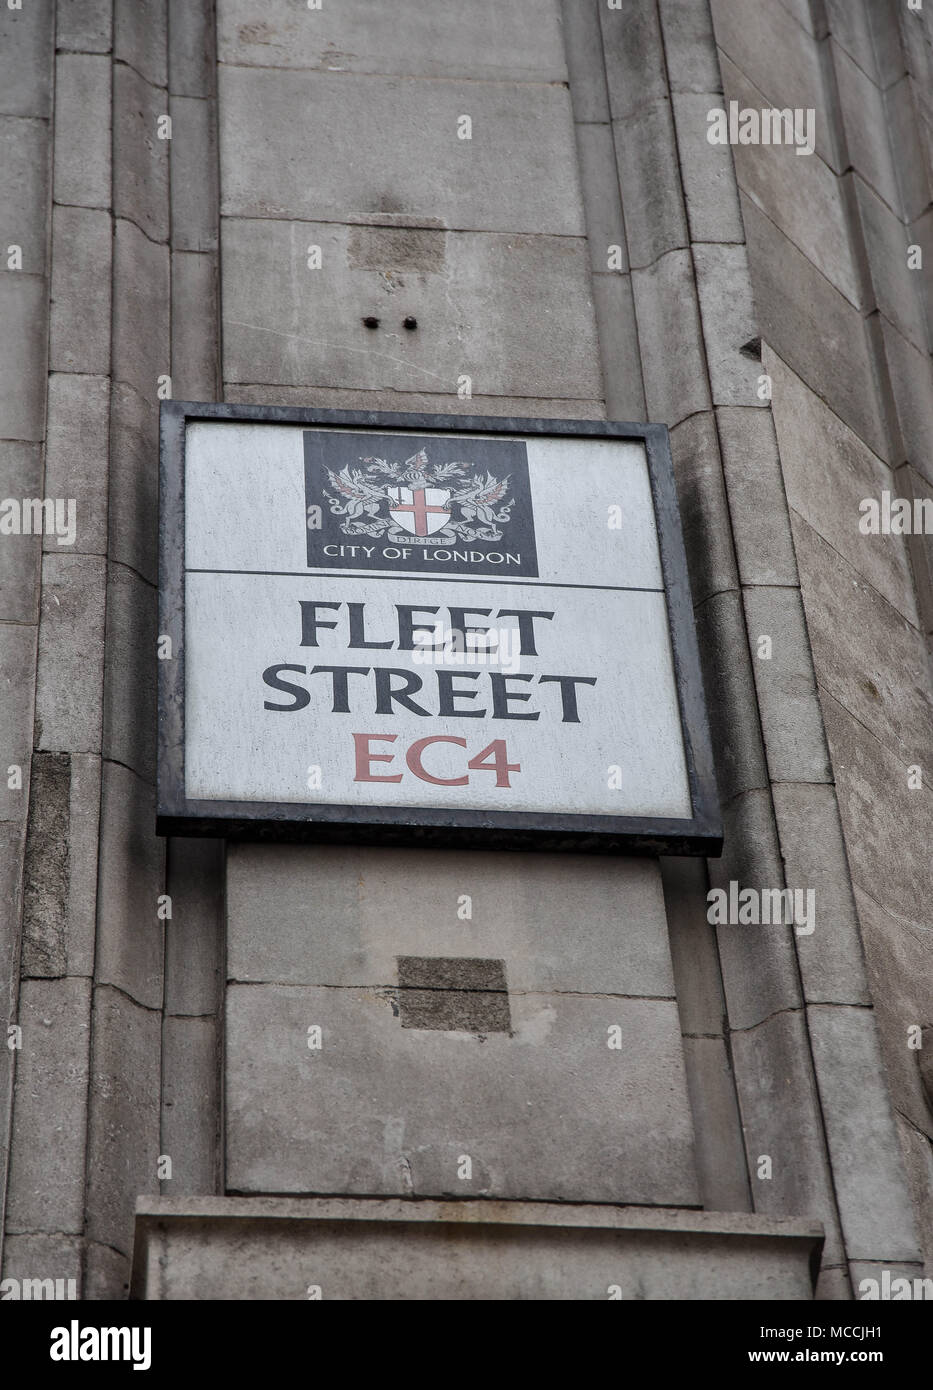 fleet street road sign - Stock Image